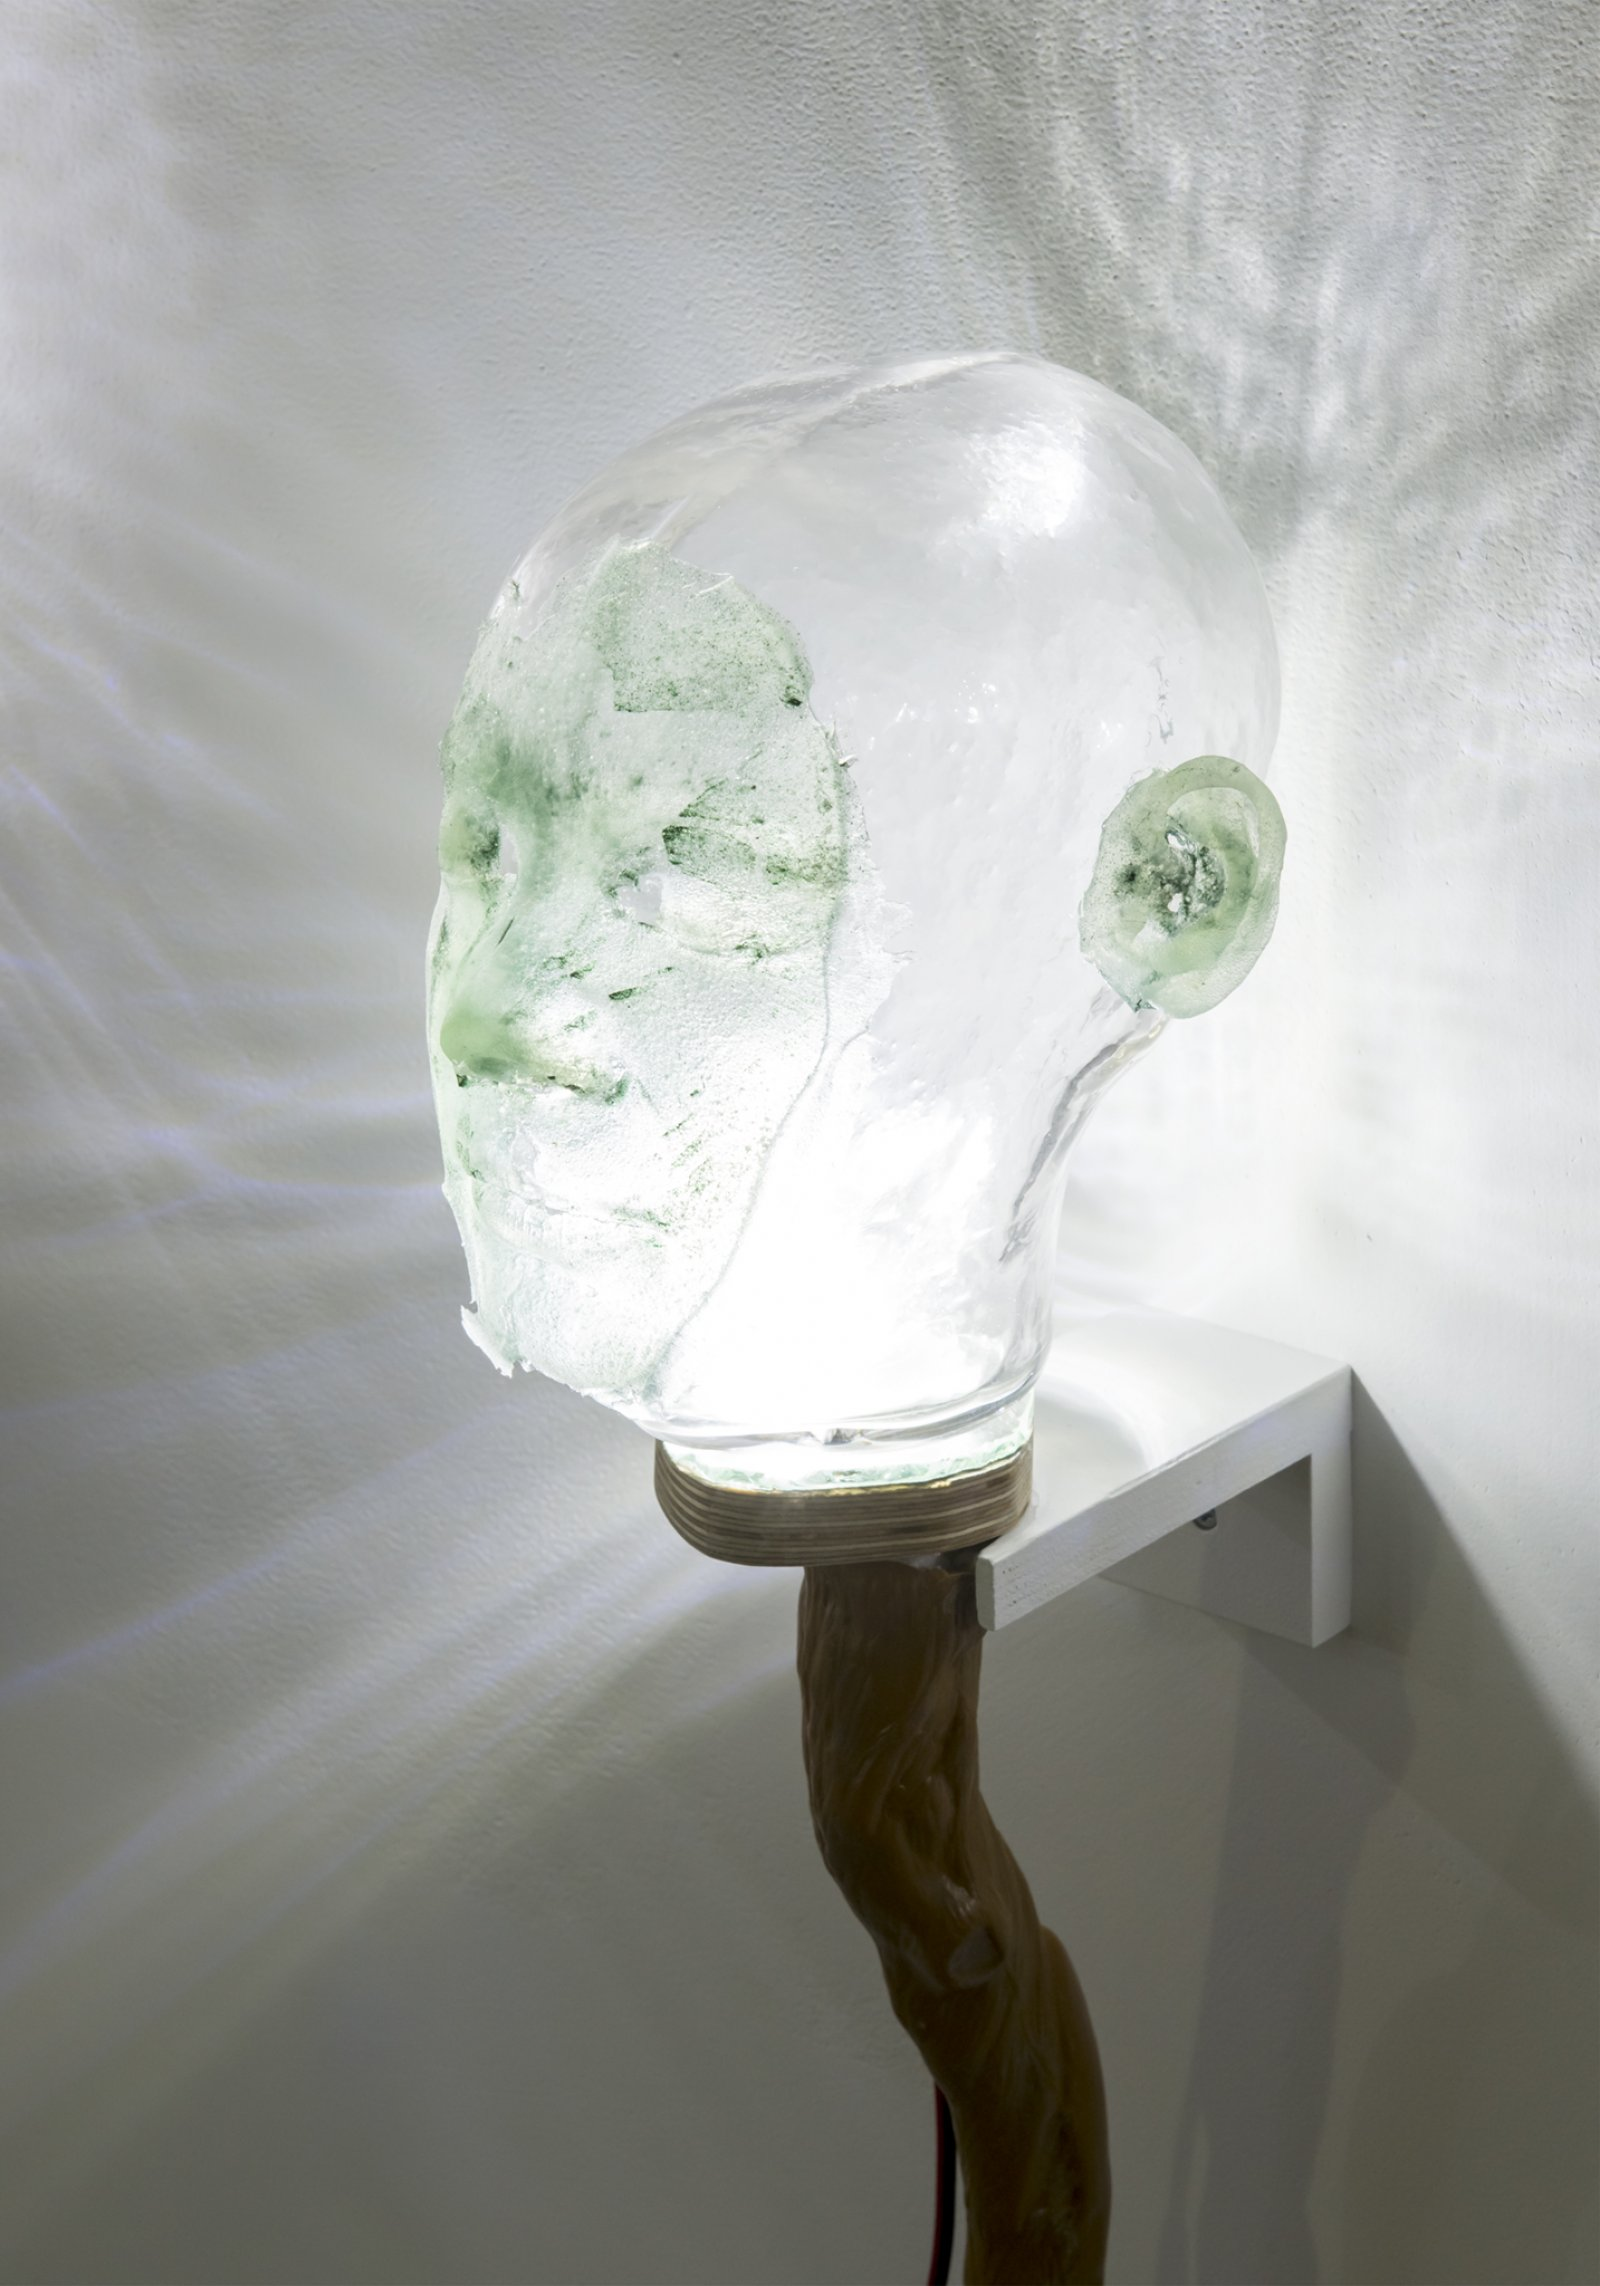 Julia Feyrer, Witnesses (detail), 2018, spirulina, quidditch broom handle, handblown glass, dyed silicone, LED lights, 34 x 7 x 10 in. (86 x 18 x 25 cm)